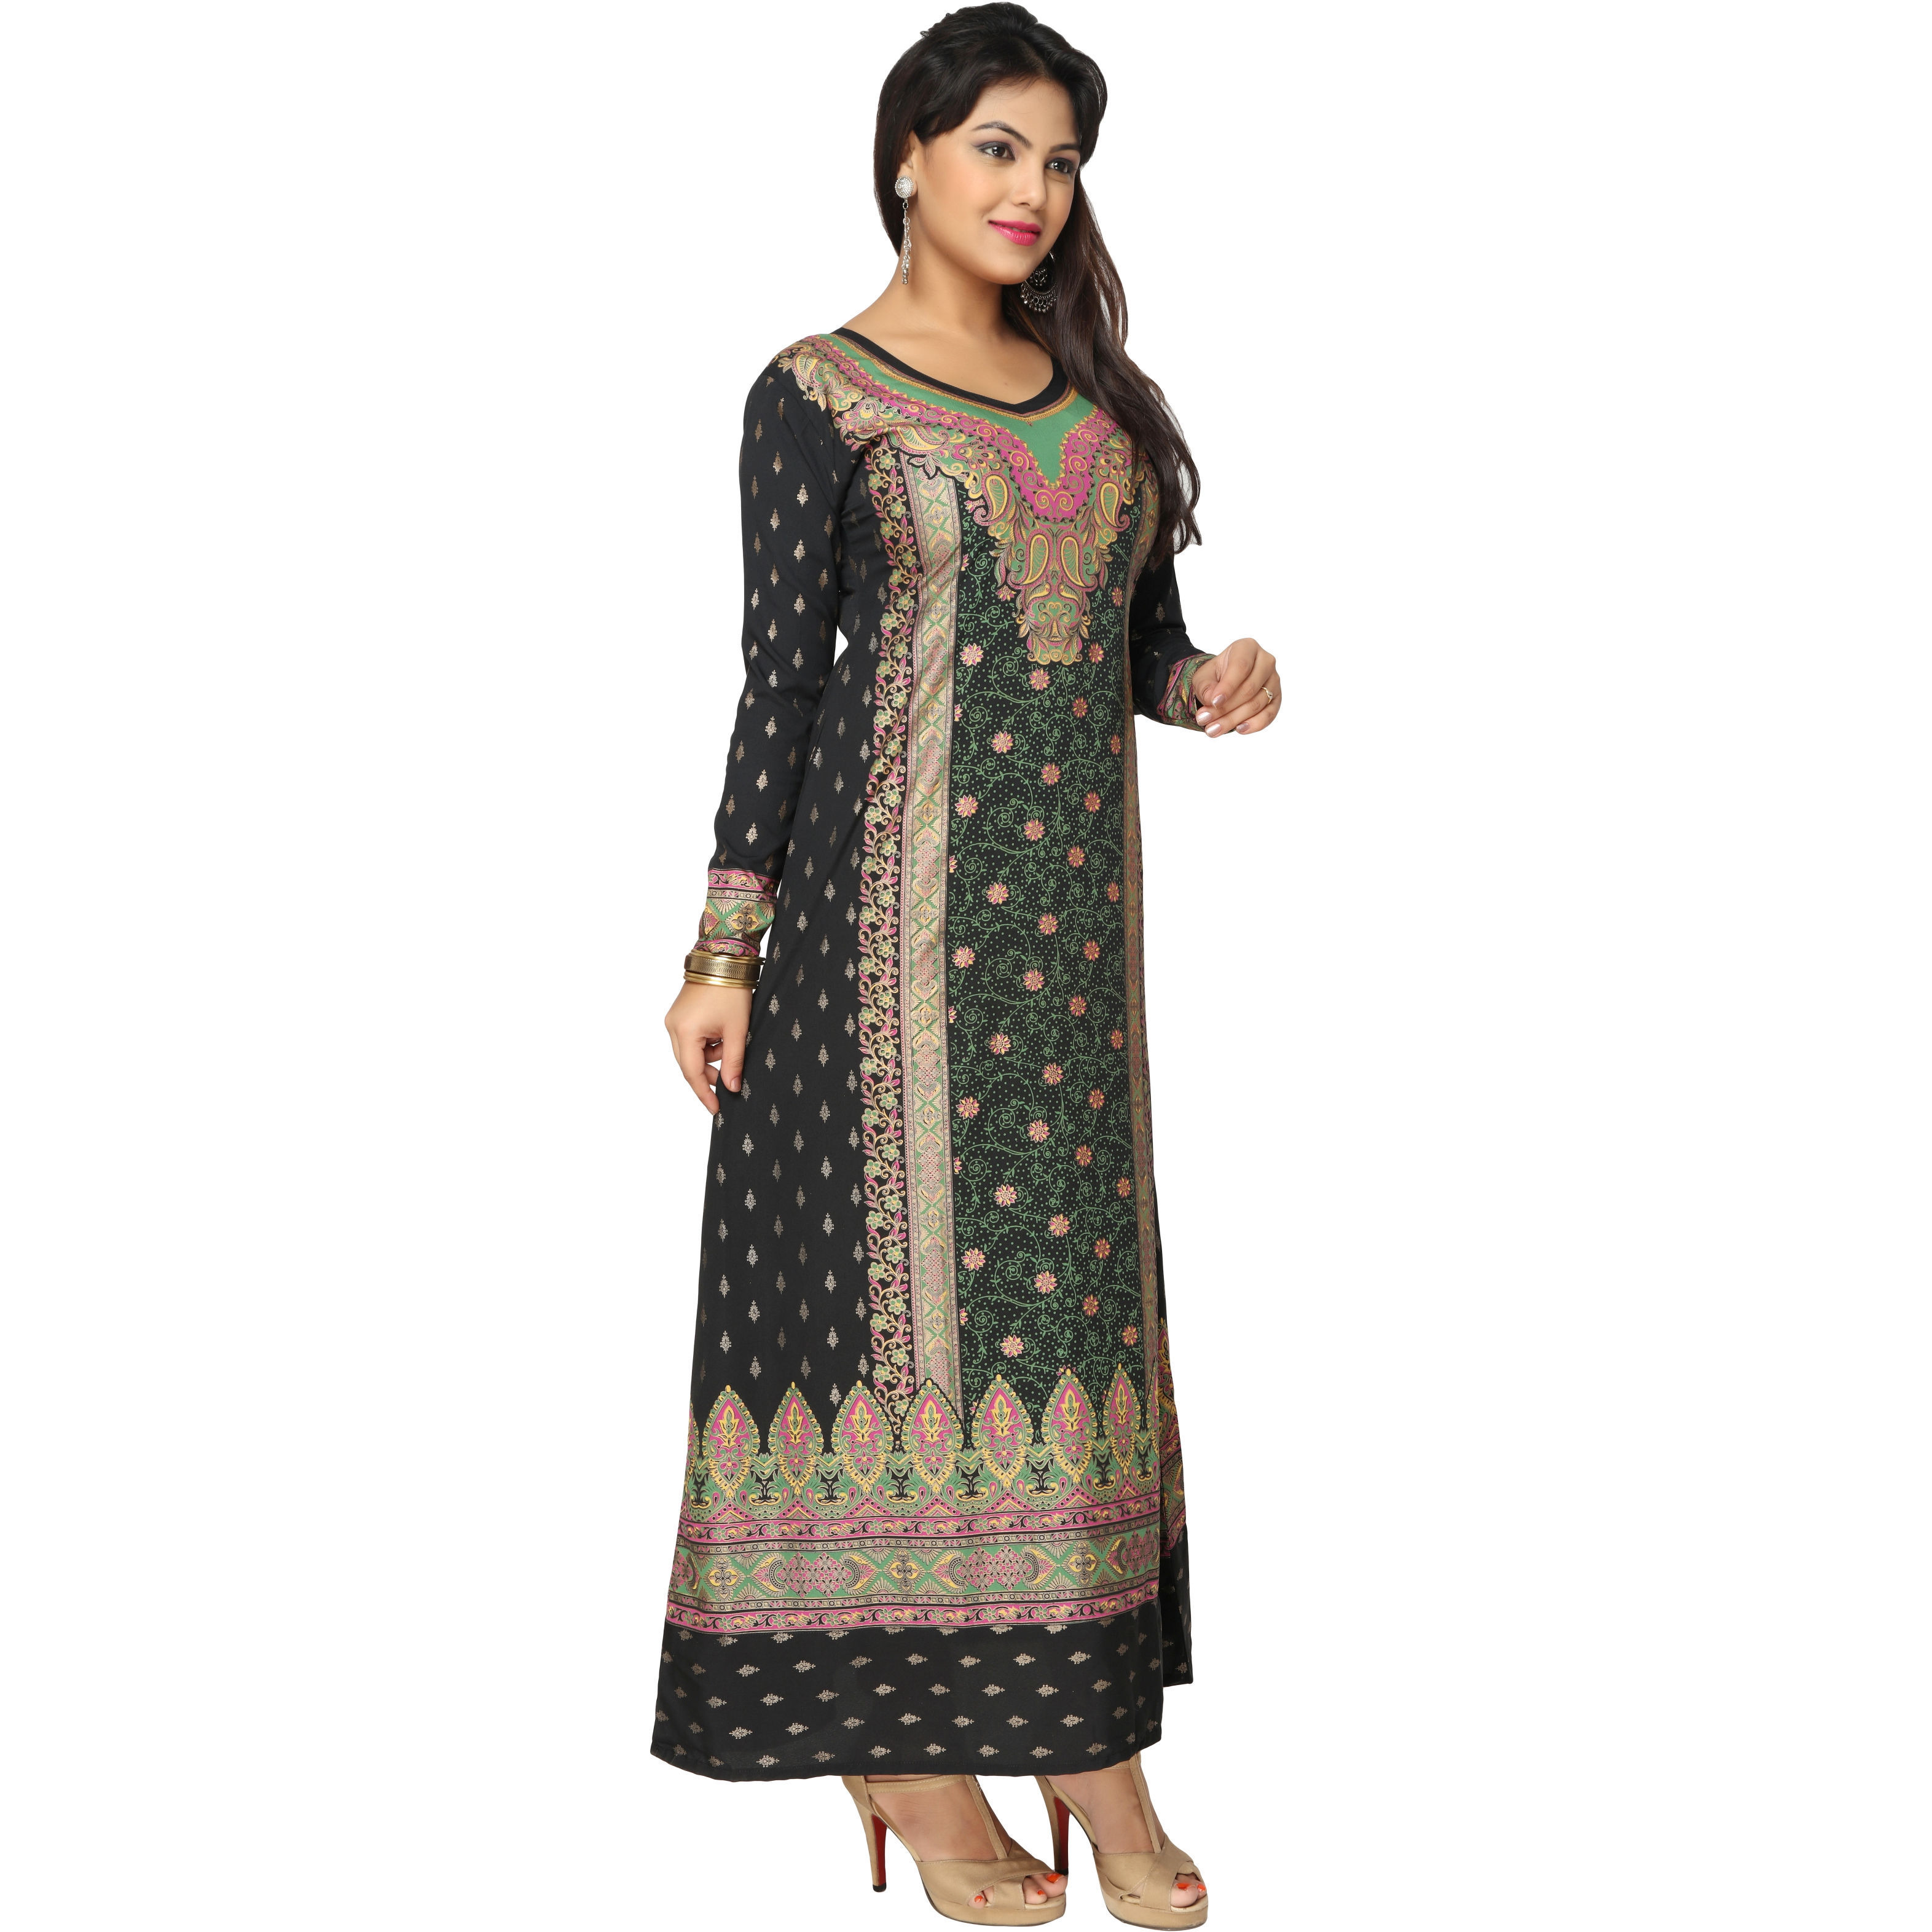 TrendyFashionMall Gold Print Kaftans Maxi Dresses with design in Front and Back (Color:TFMKFT01032-BLACK-GREEN, Size:52 - 5X-LARGE)